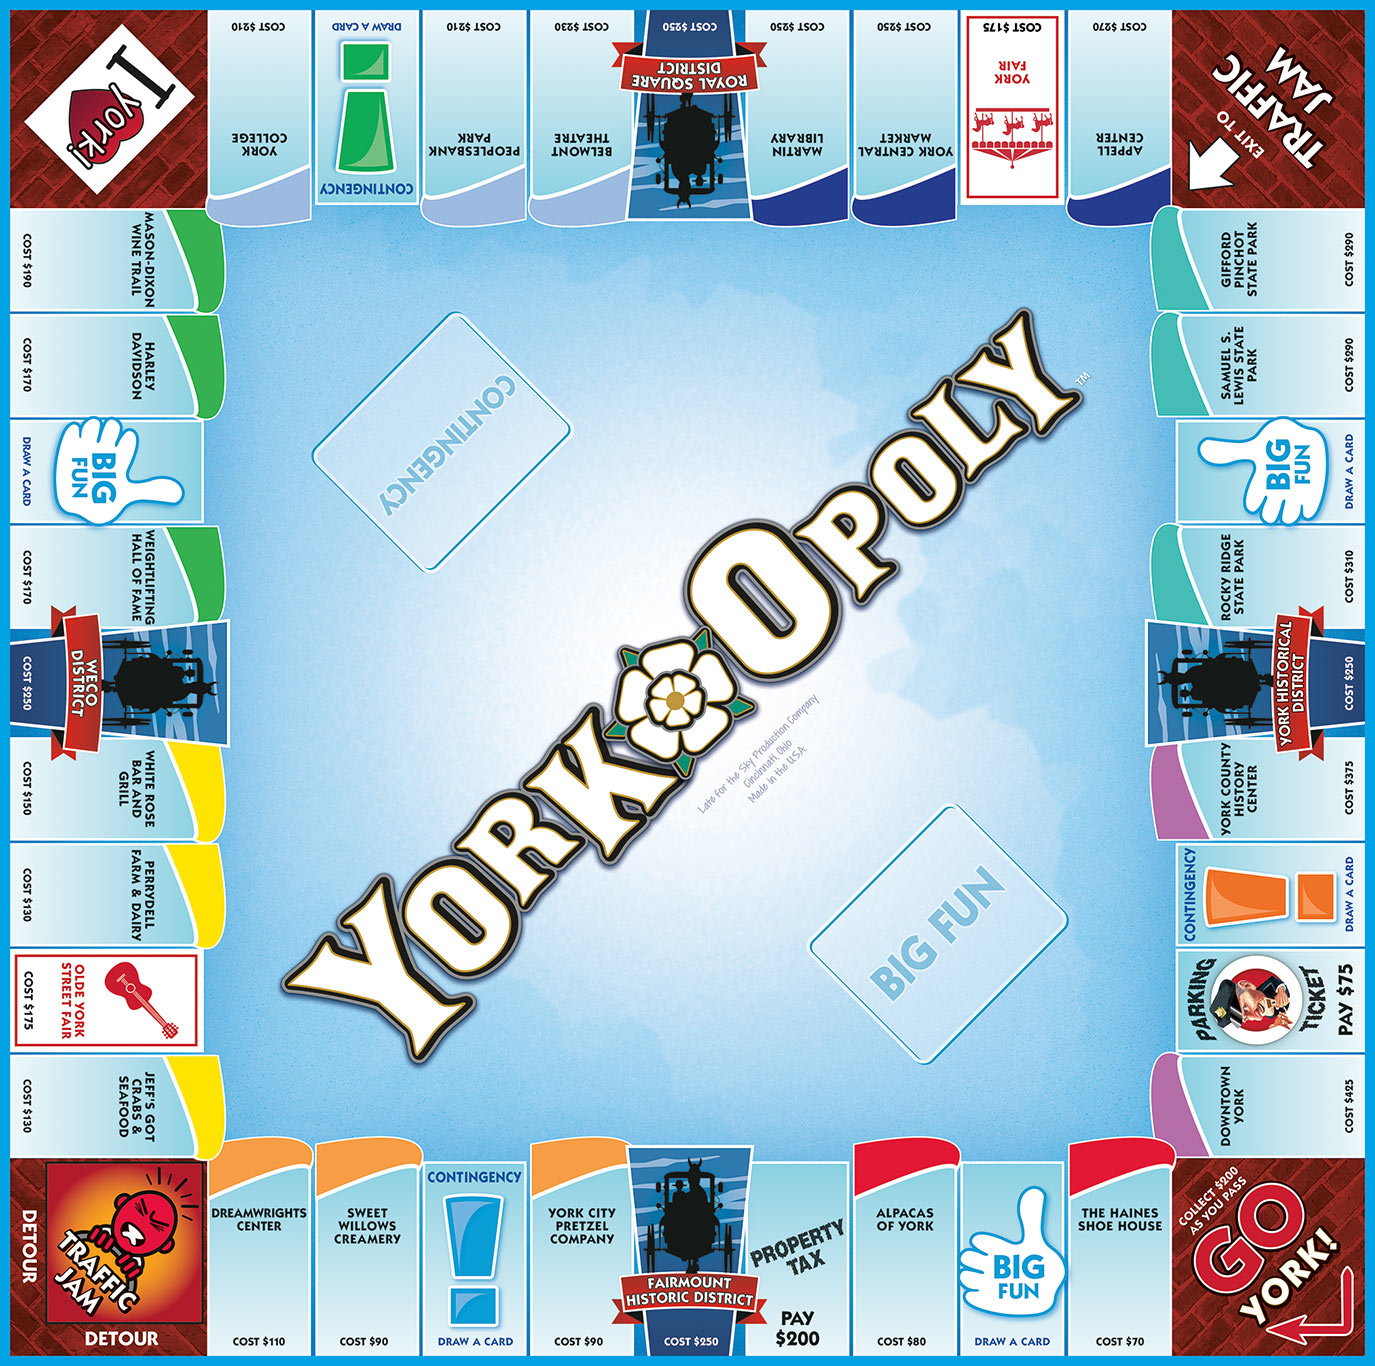 YORK-OPOLY Board Game